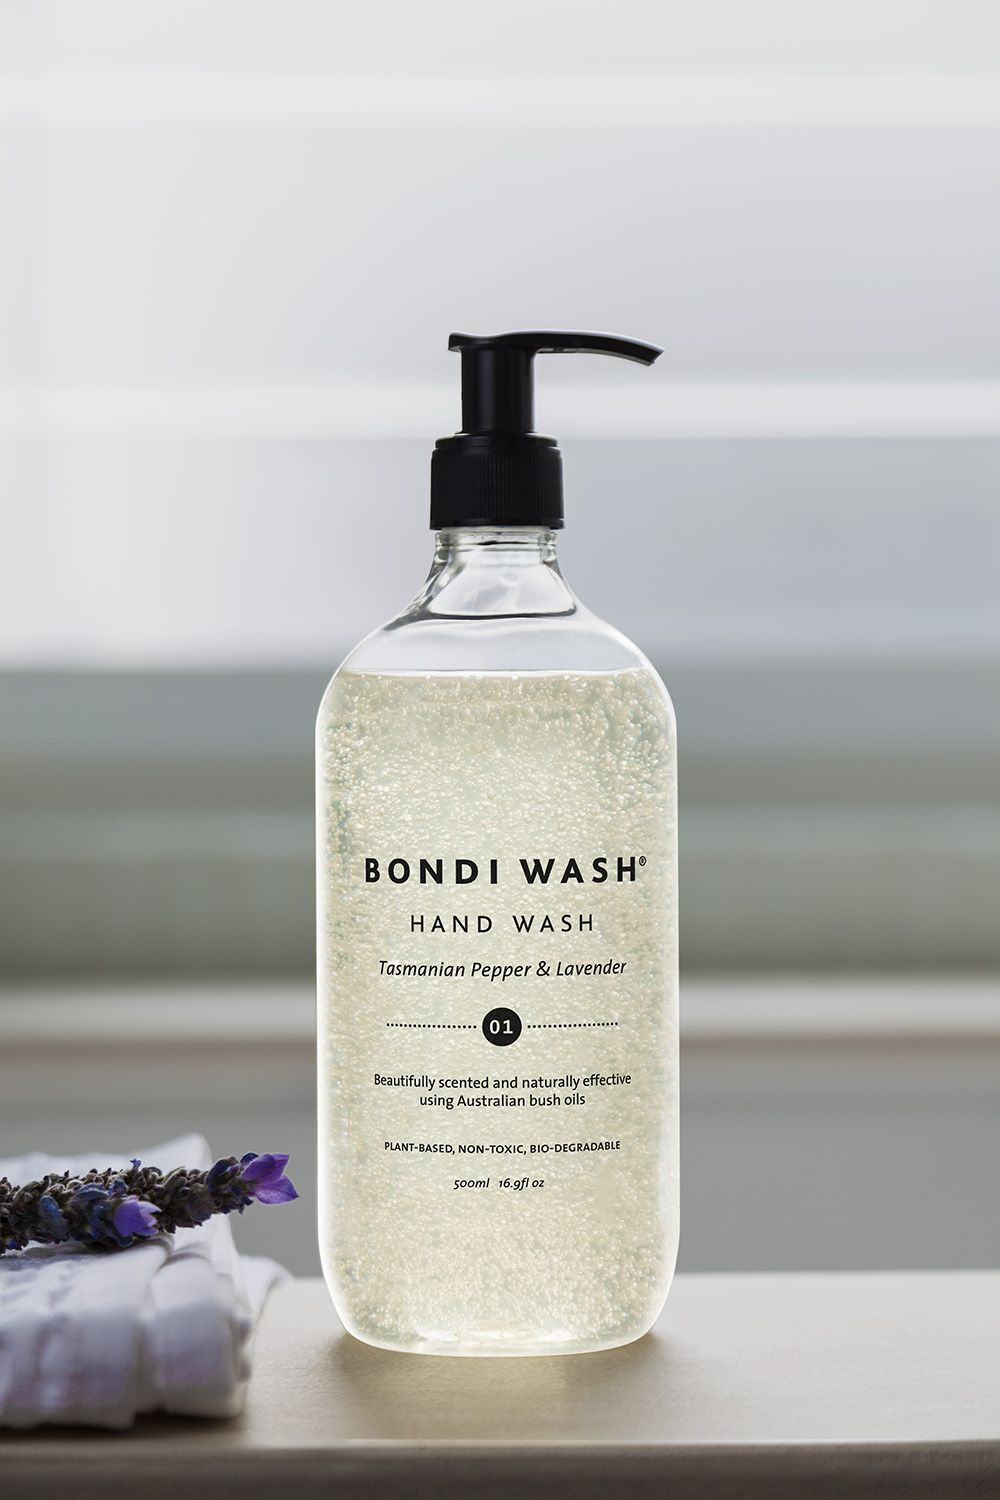 Bondi wash brings natural australian cleaning products to